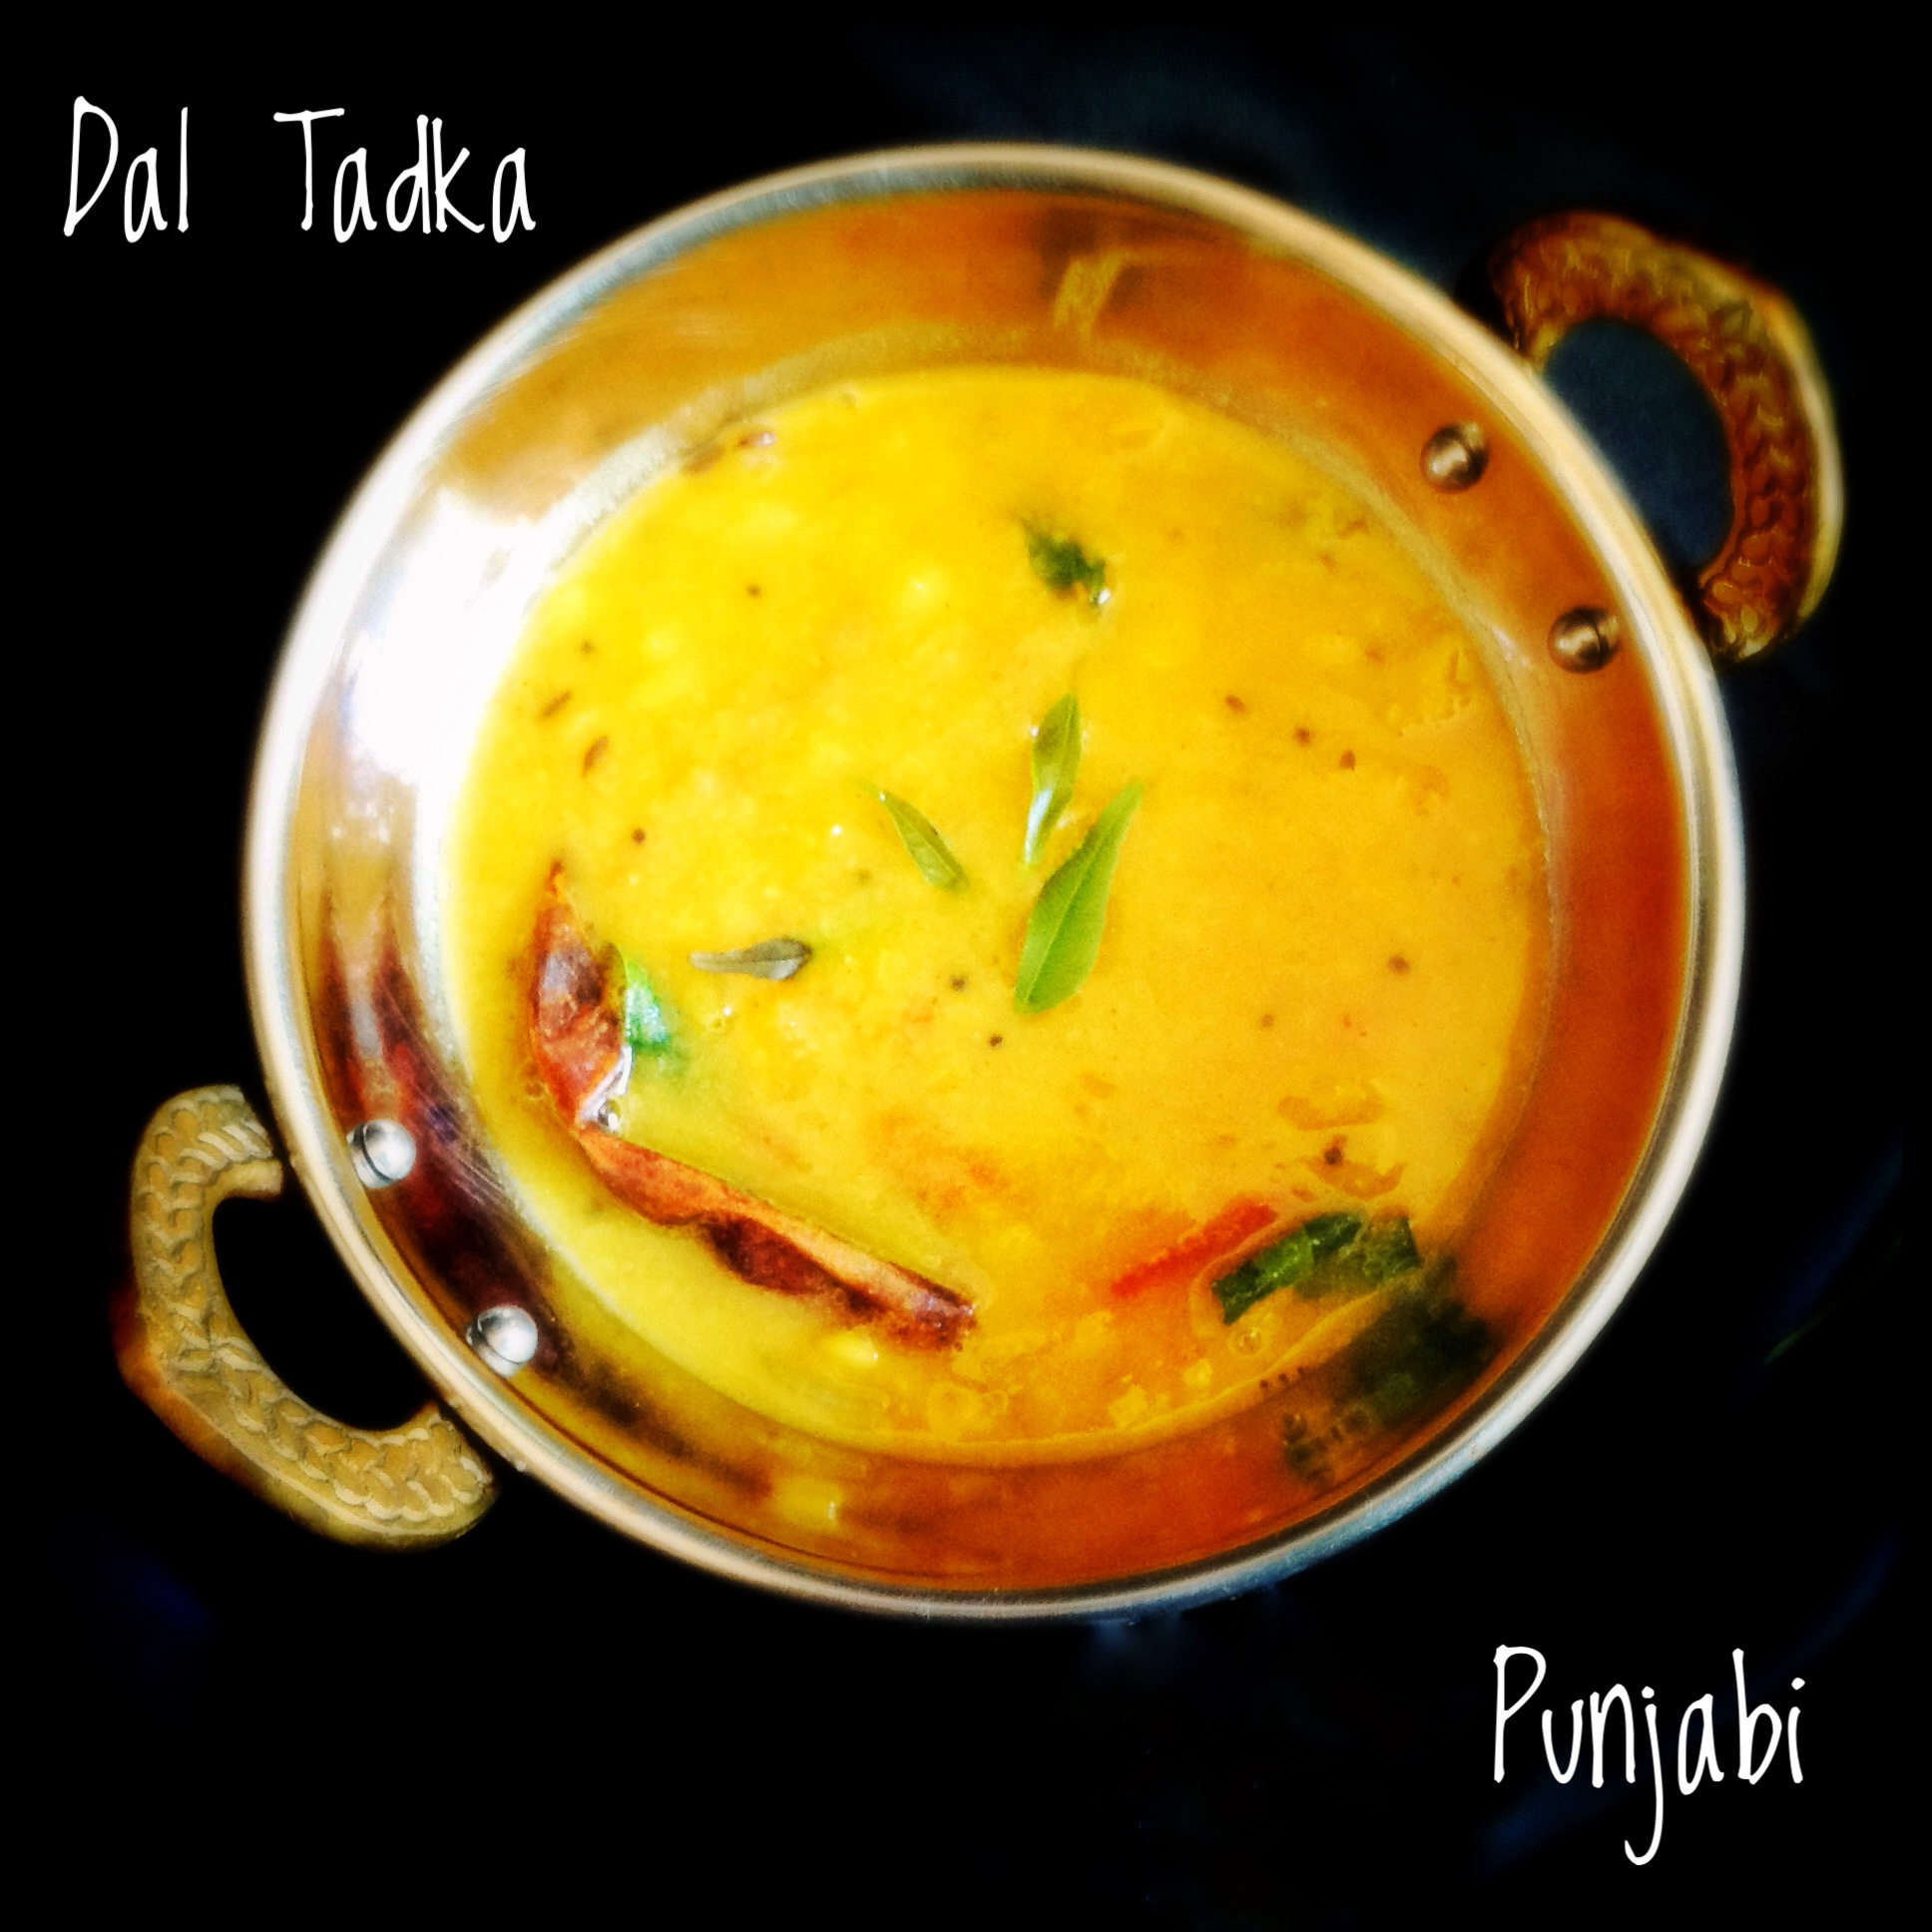 Indian Essentials: What is the Difference Between Dal Fry and Tadka Dal?